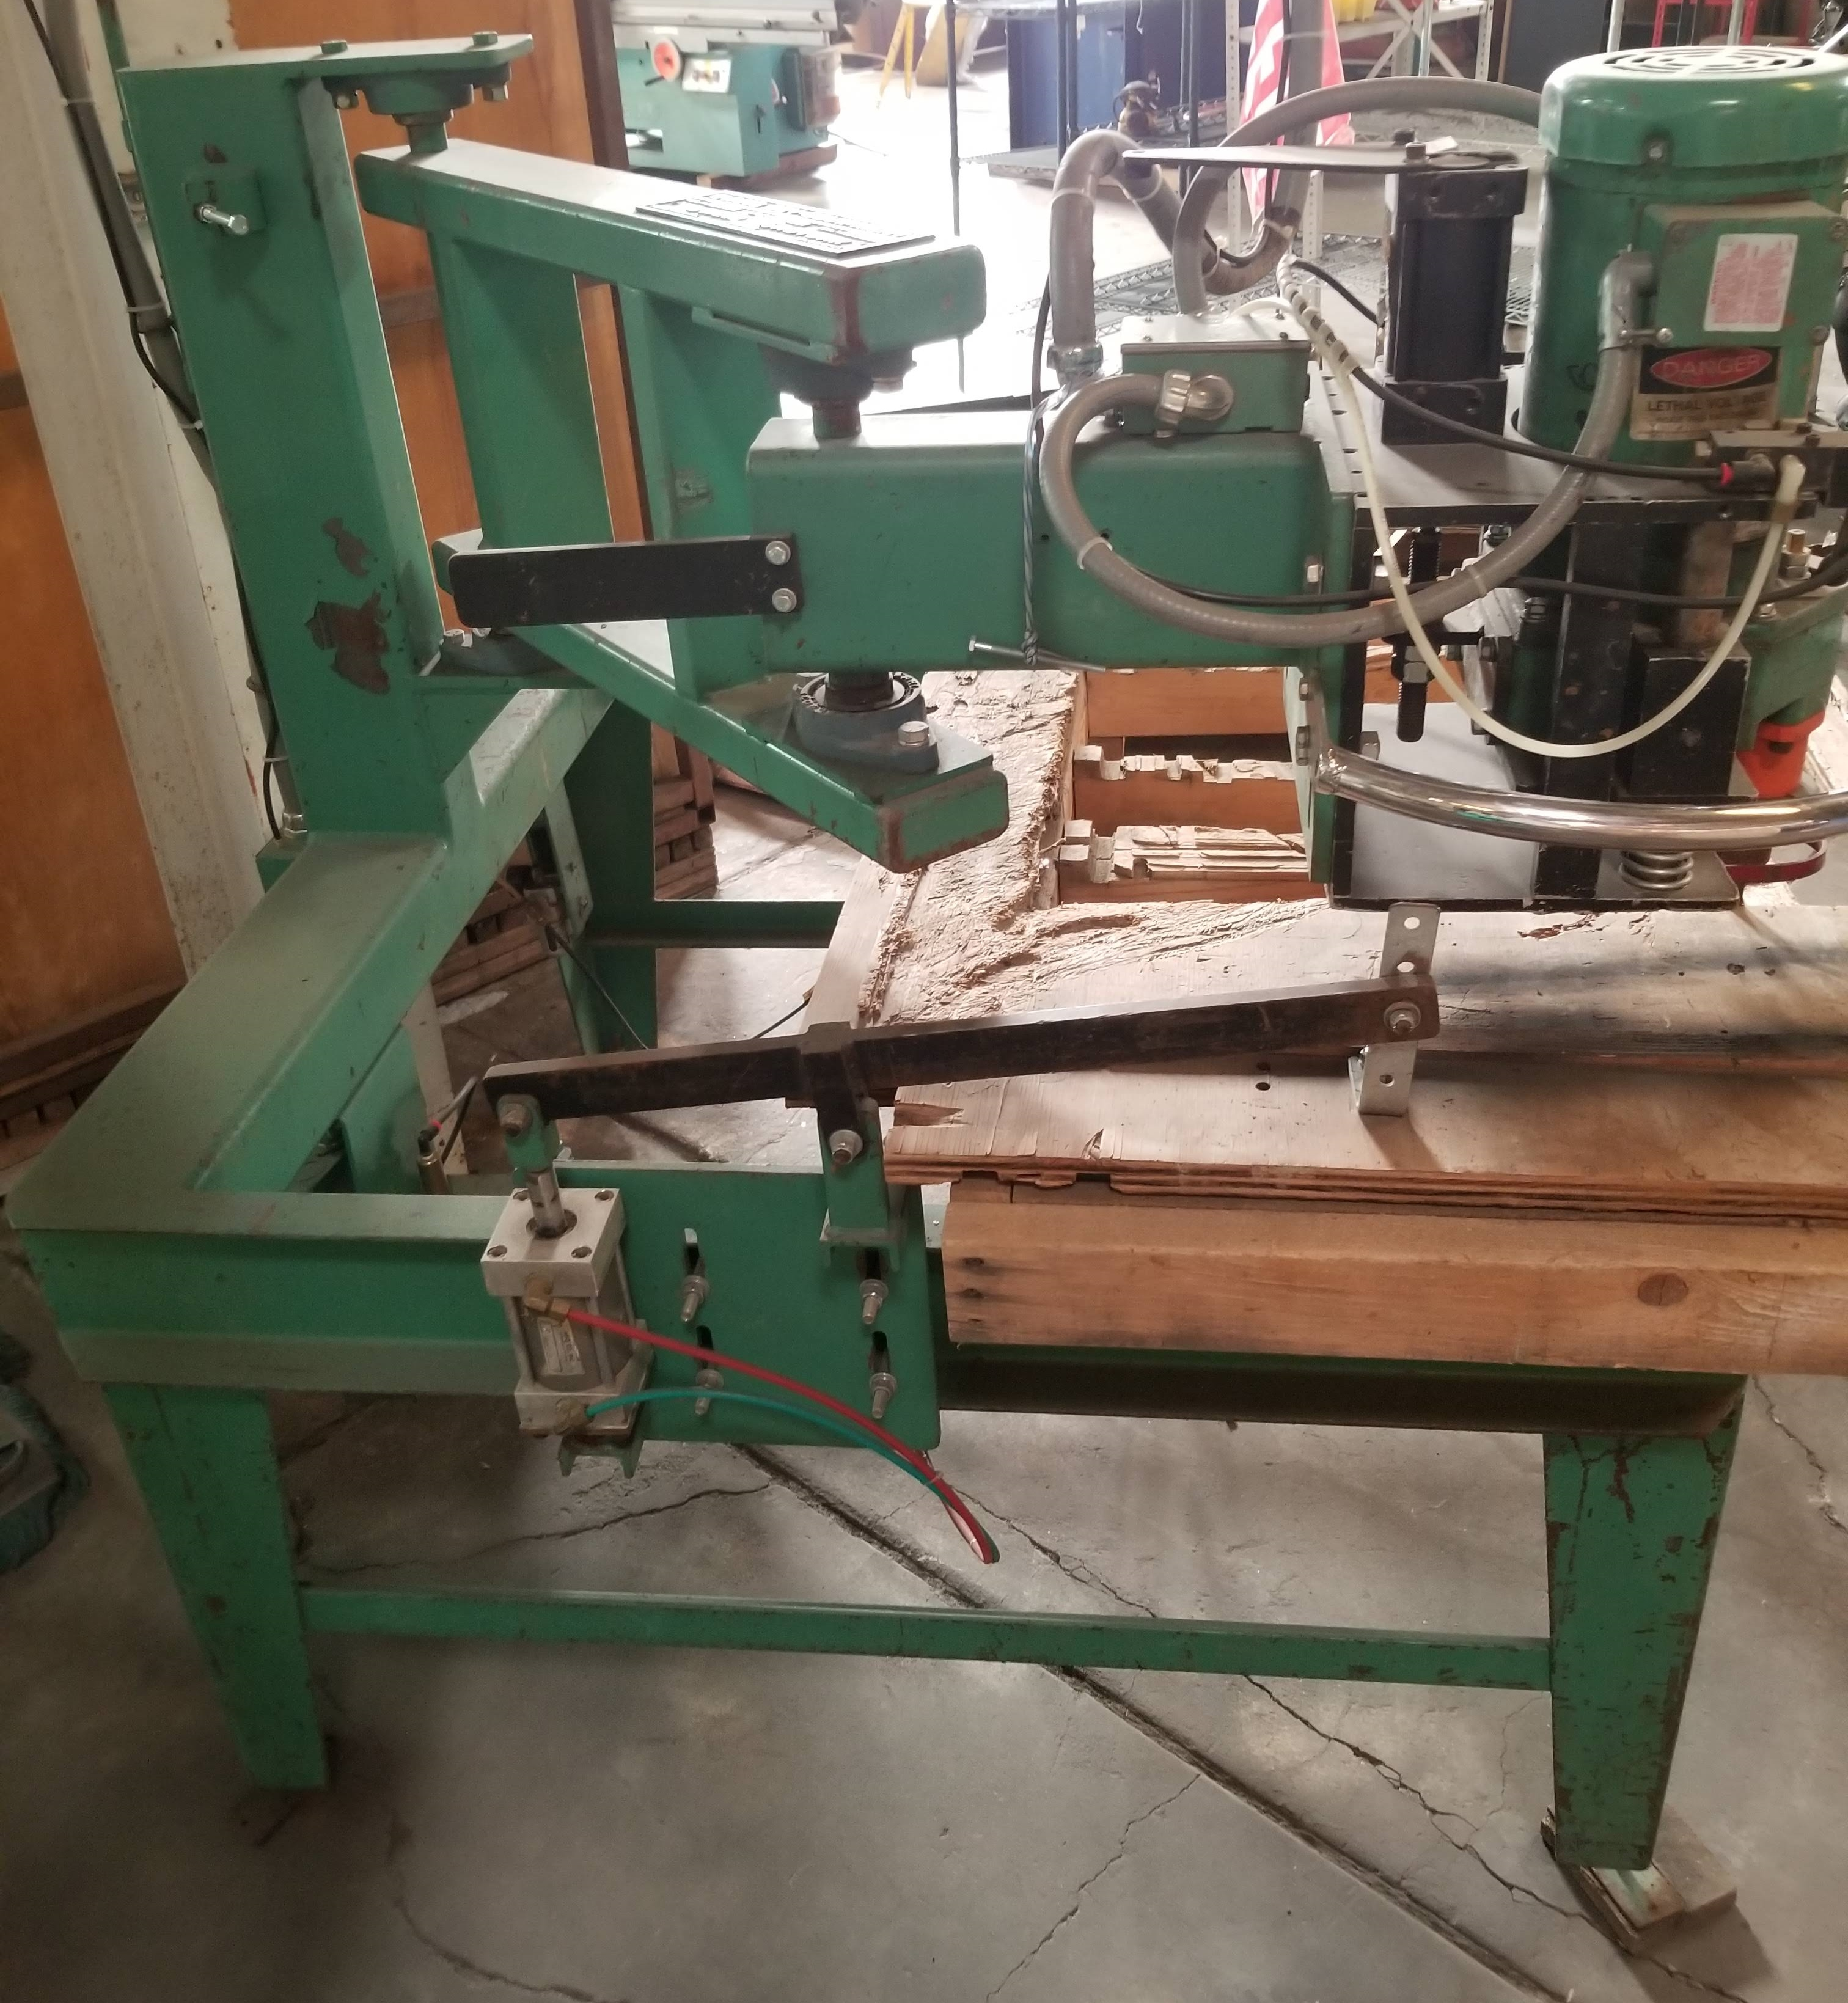 Lot 10 - Evans Rotork #2475 Countertop Sink Cut-Out Router Machine, 230/460V 3ph, Foot Pedal Control, table